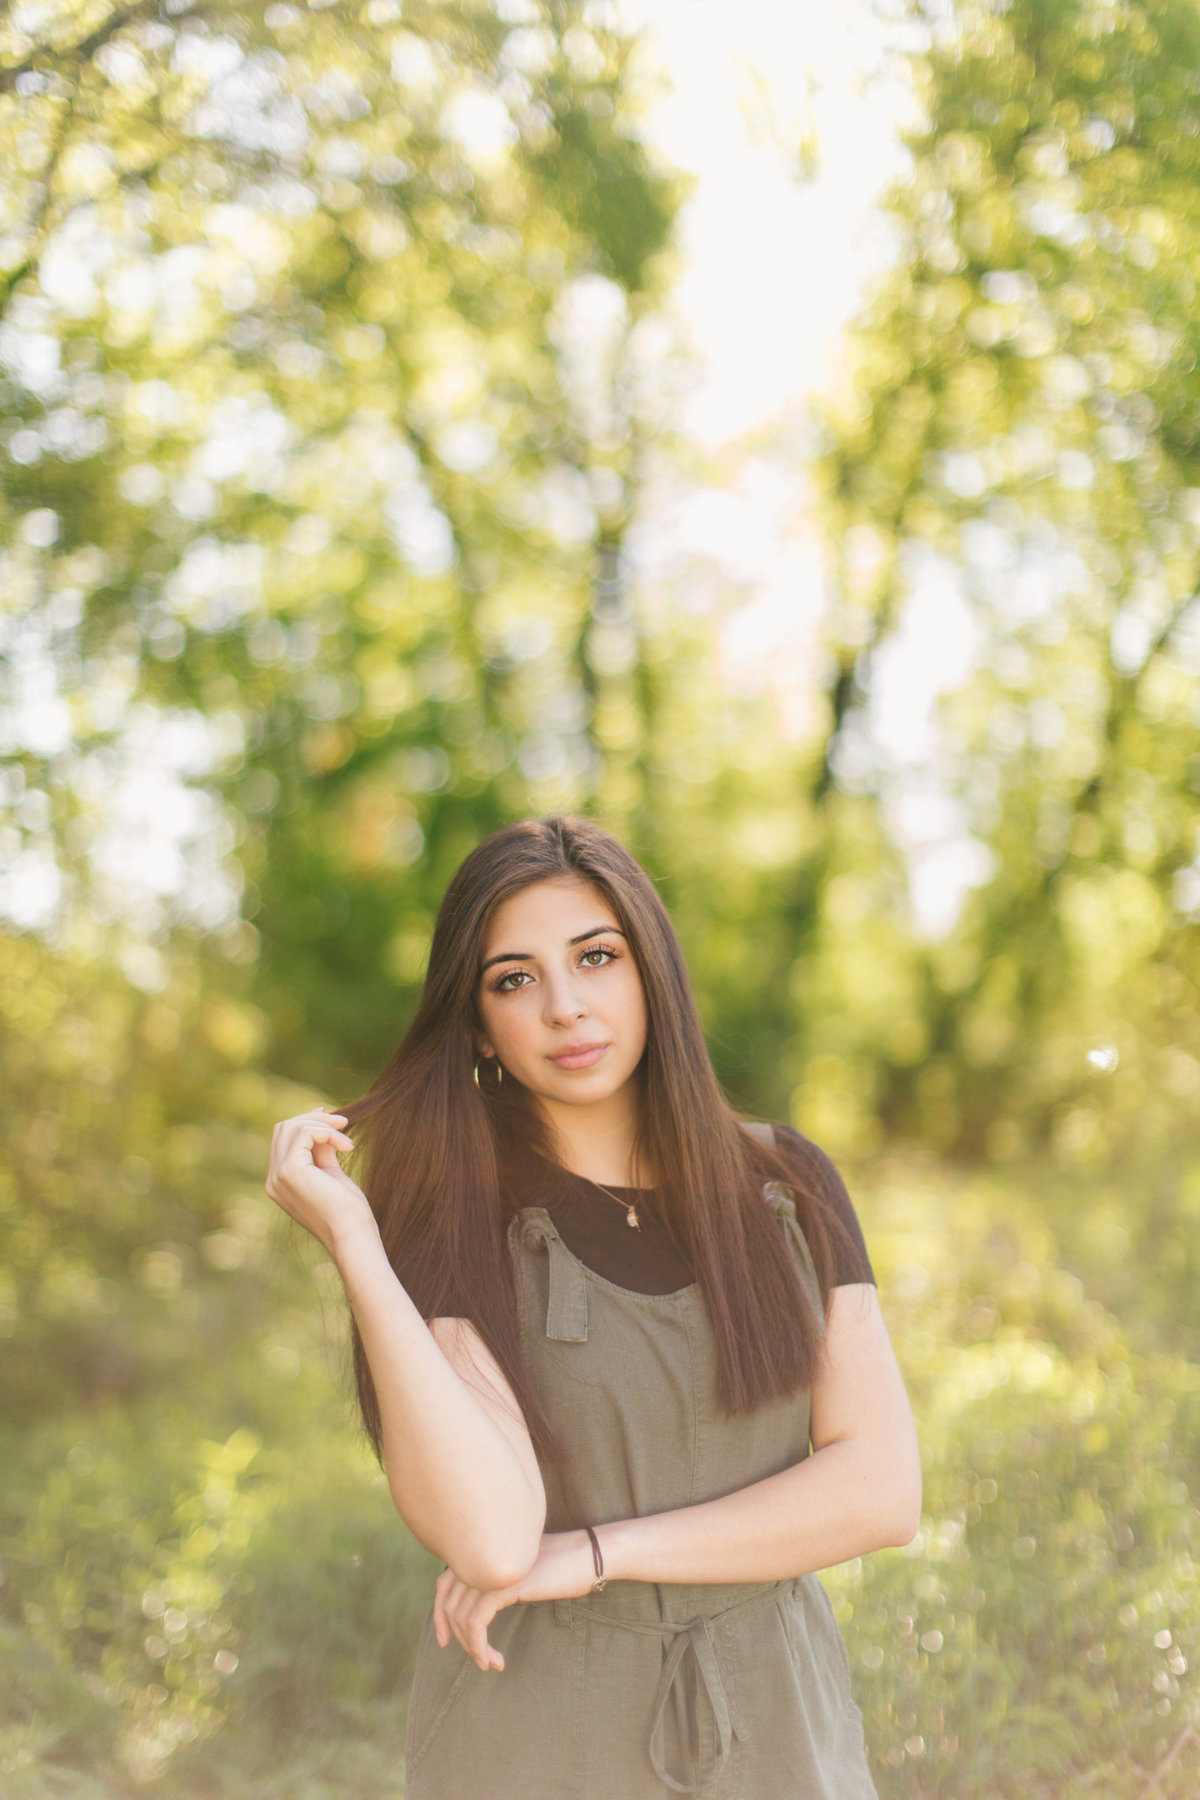 Jessie-Sarah-Chacos-Minneapolis-Senior-Photographer-16